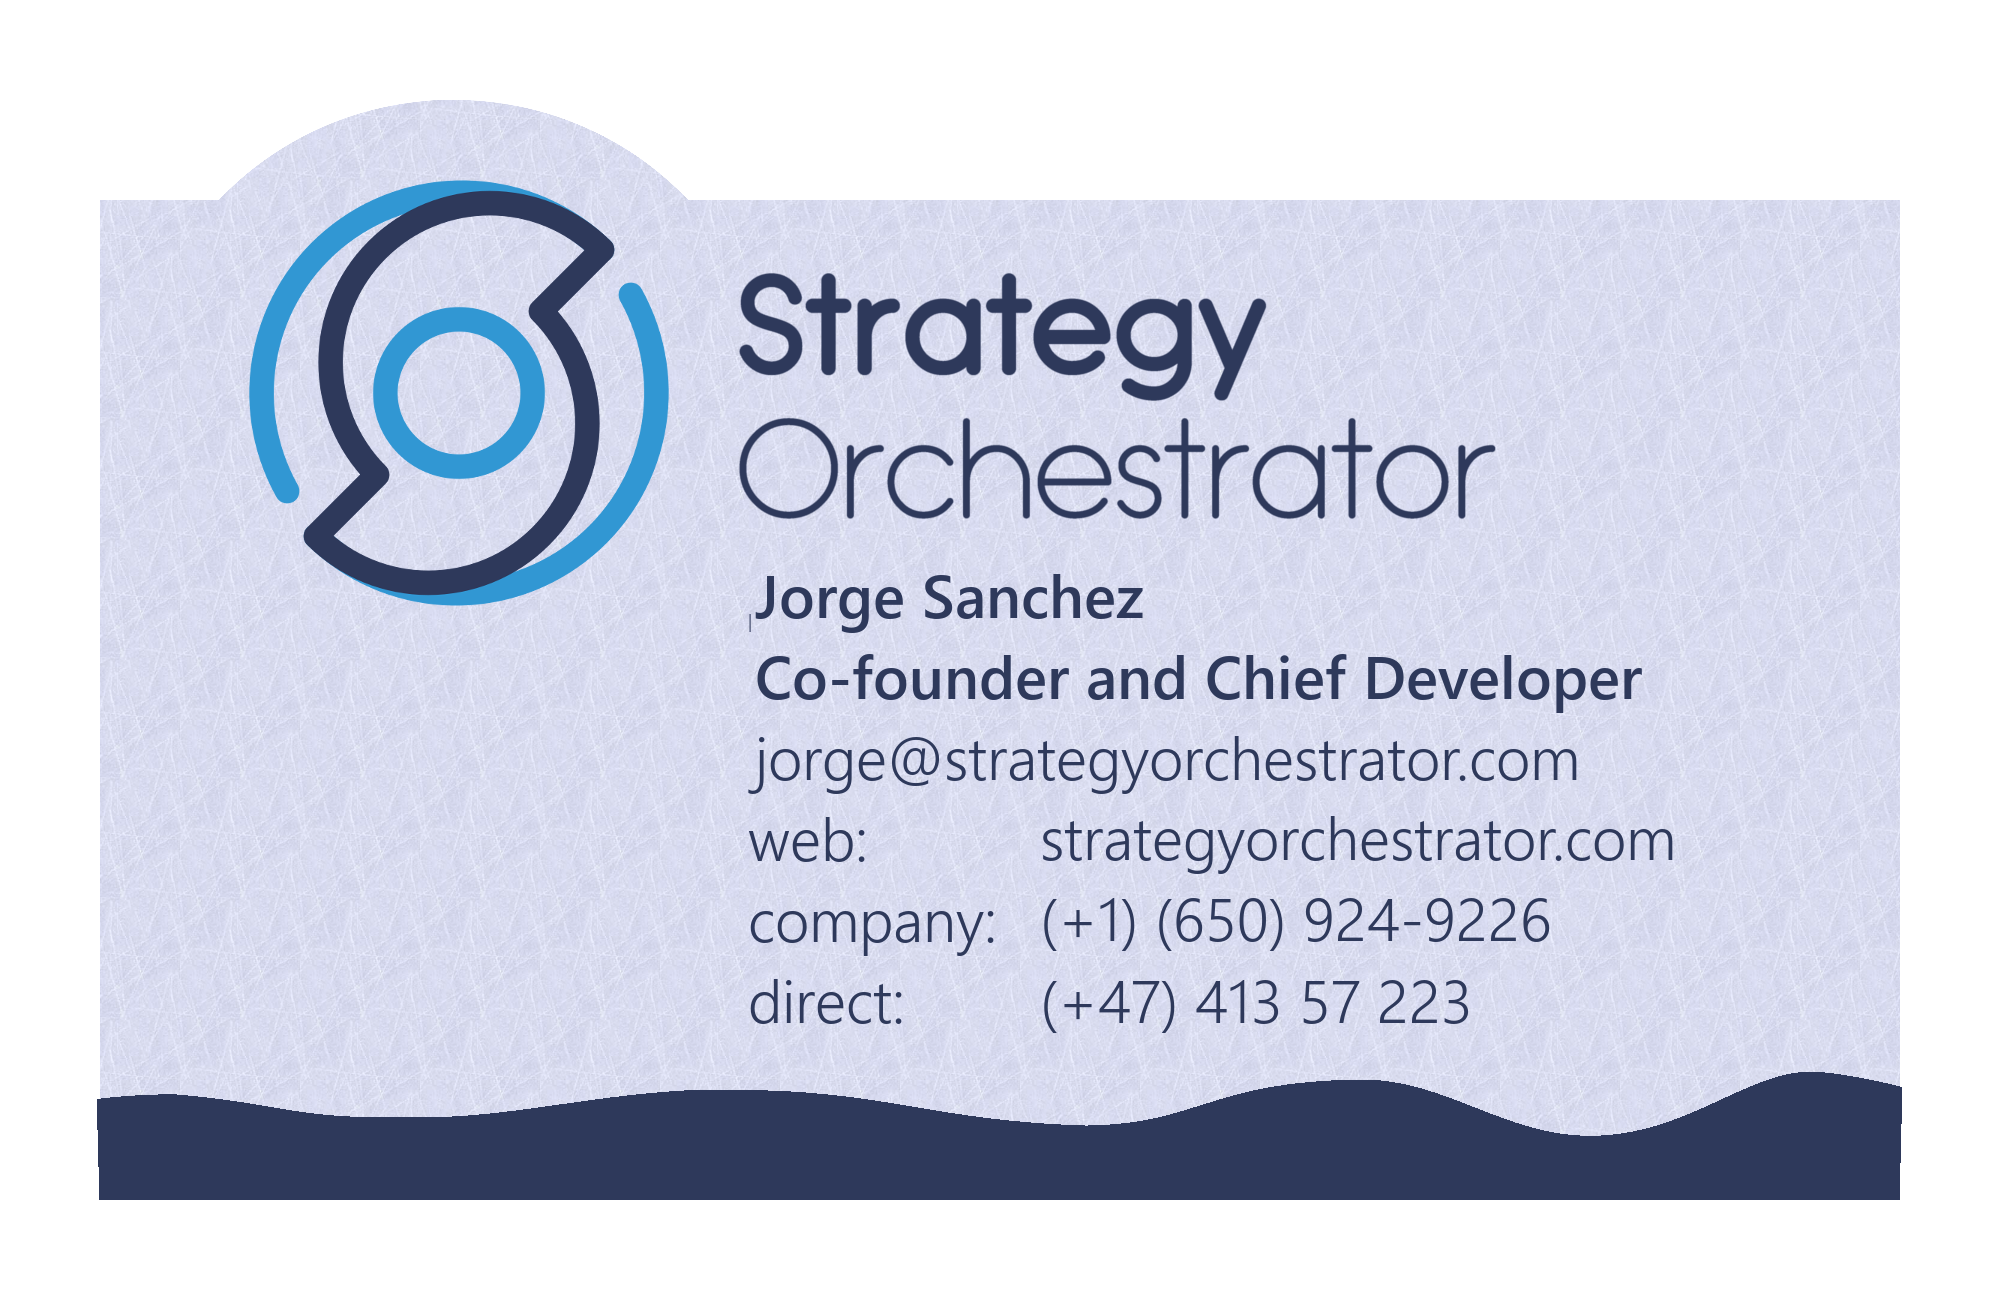 Business card 2018 - Jorge Sanchez - Front.png